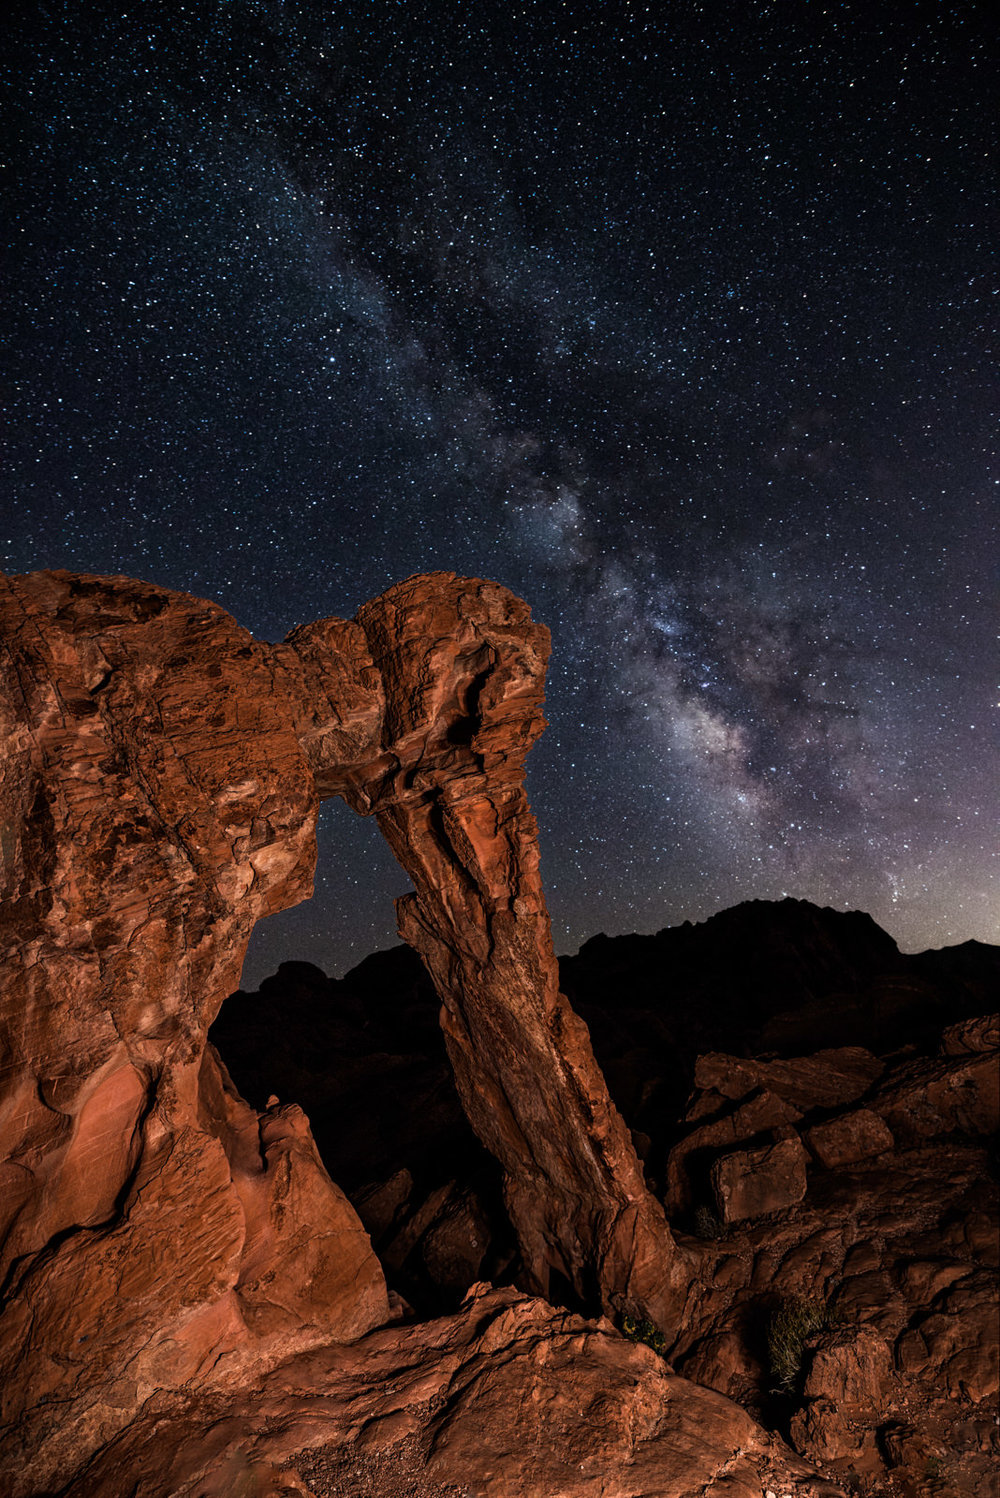 The Milky Way Over Elephant Arch